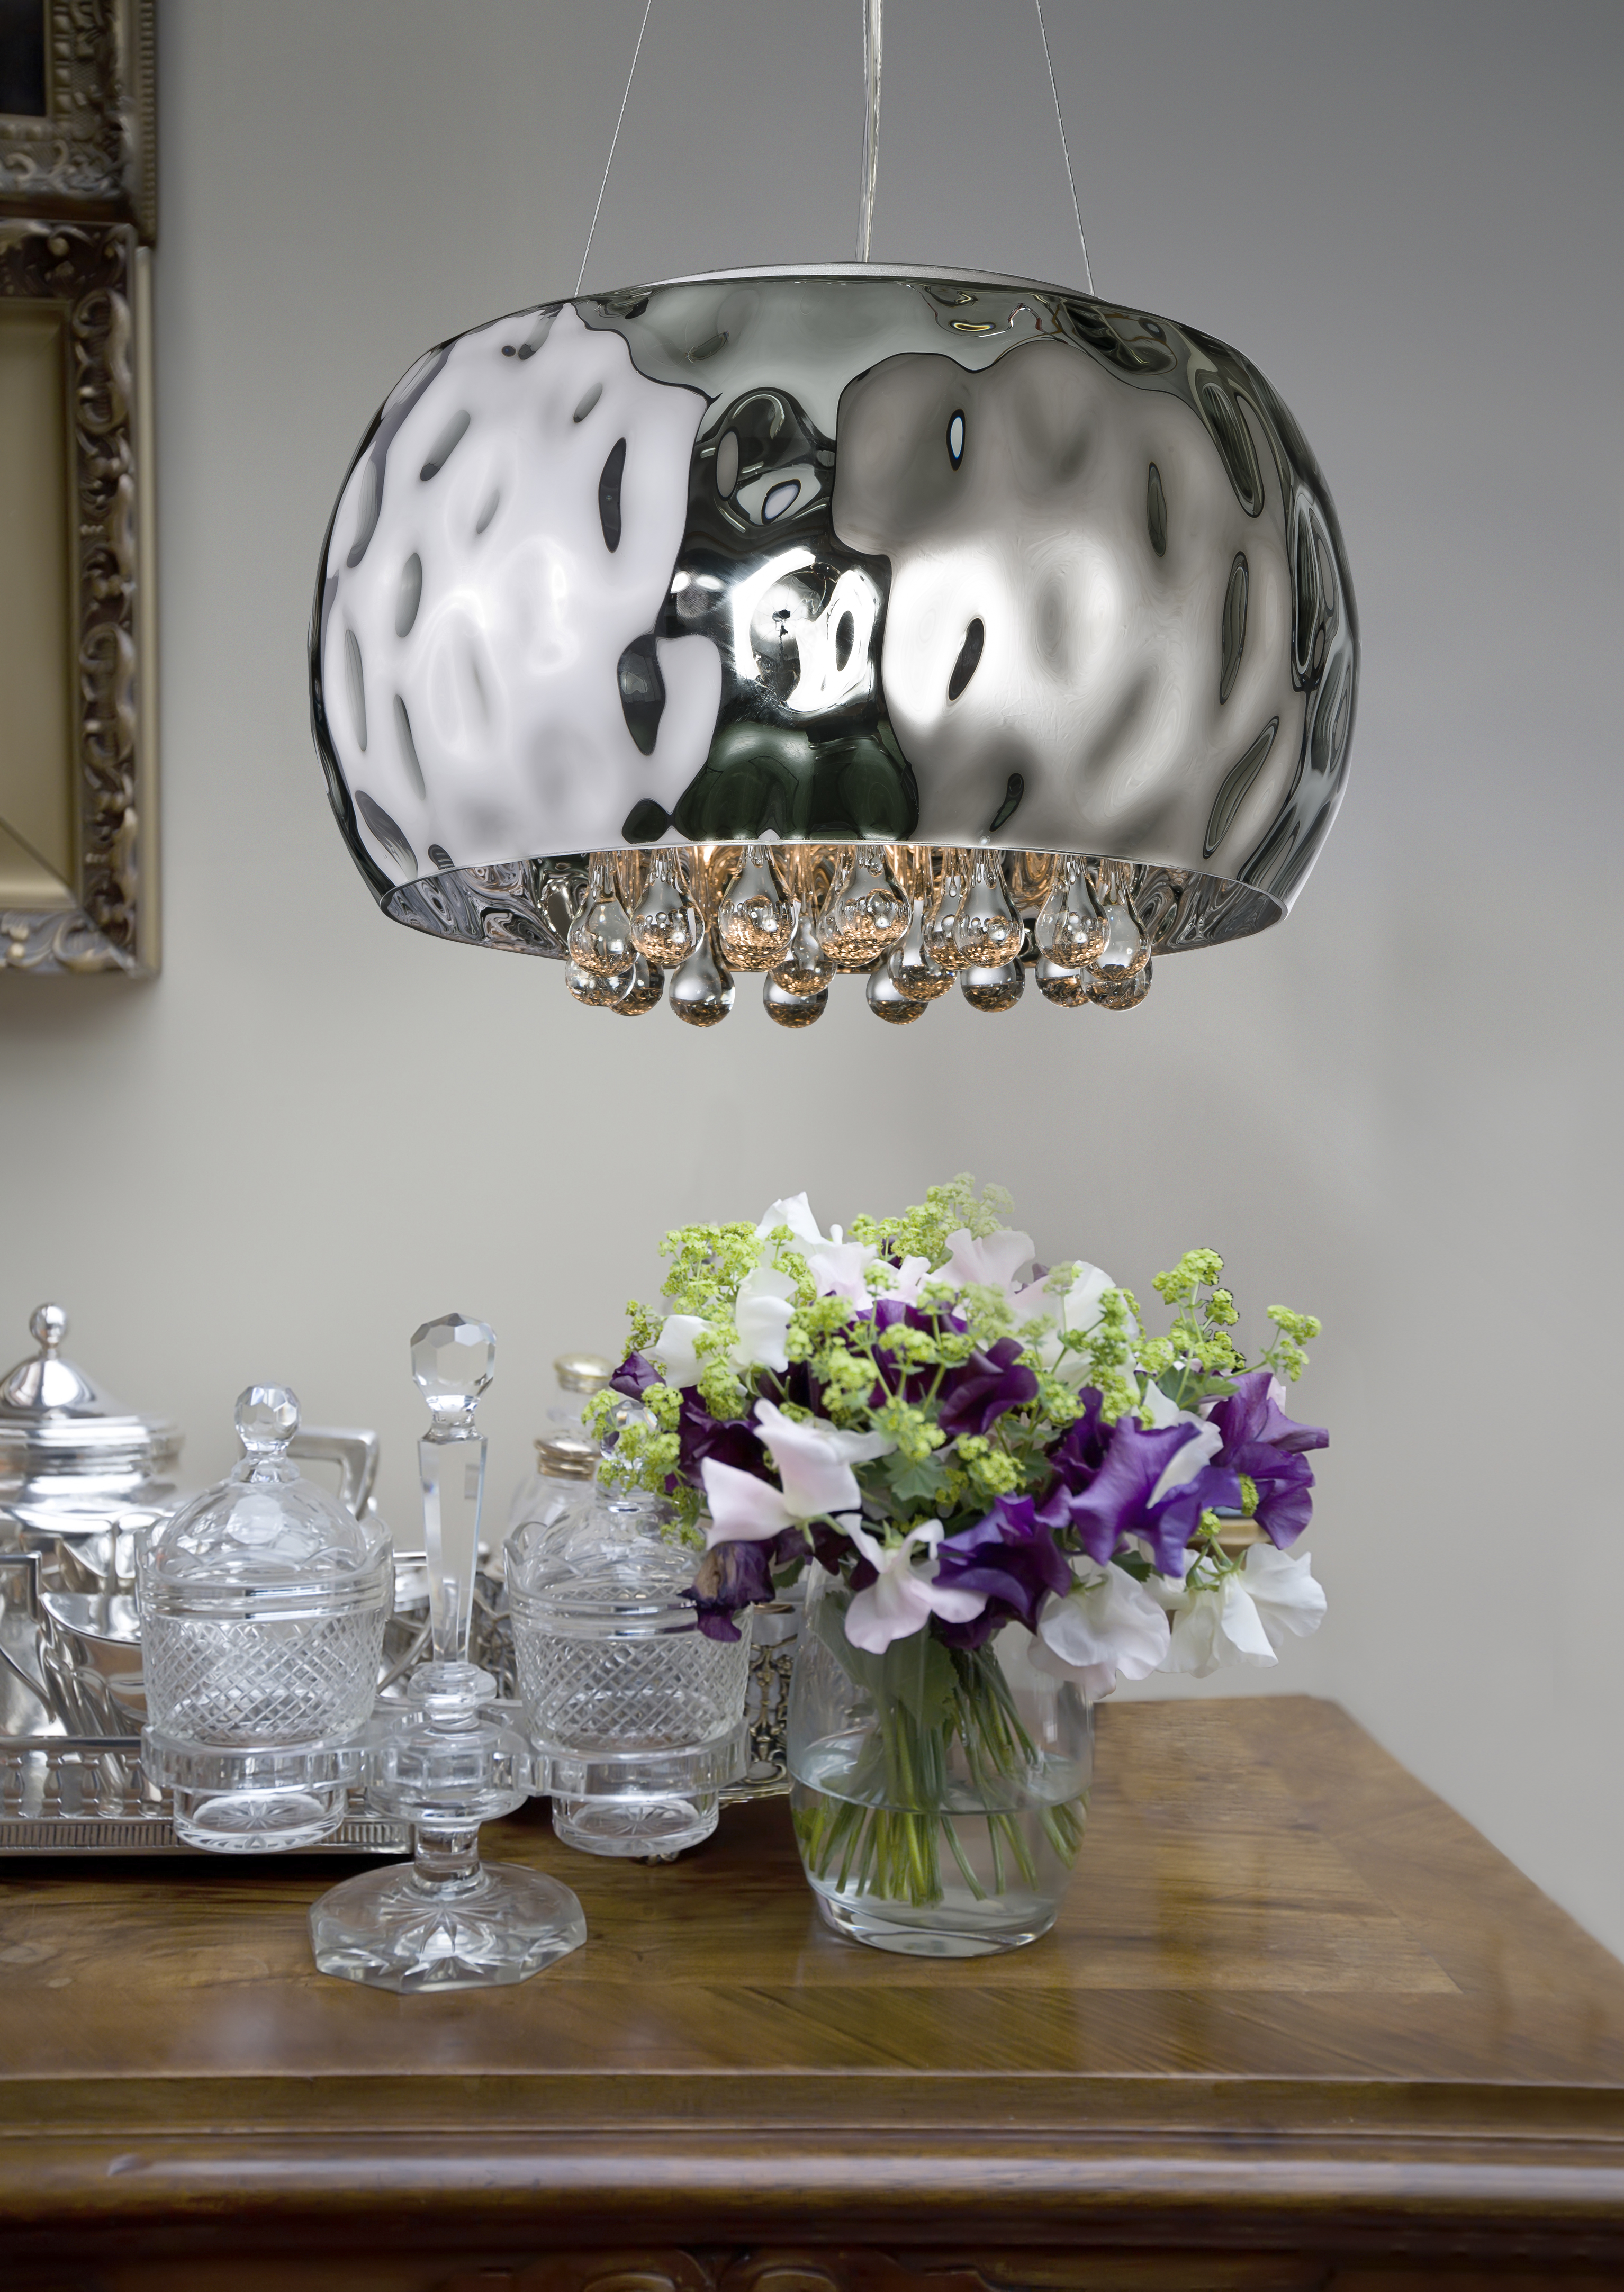 Exclusive pendant light Caldo with crystals inspiration